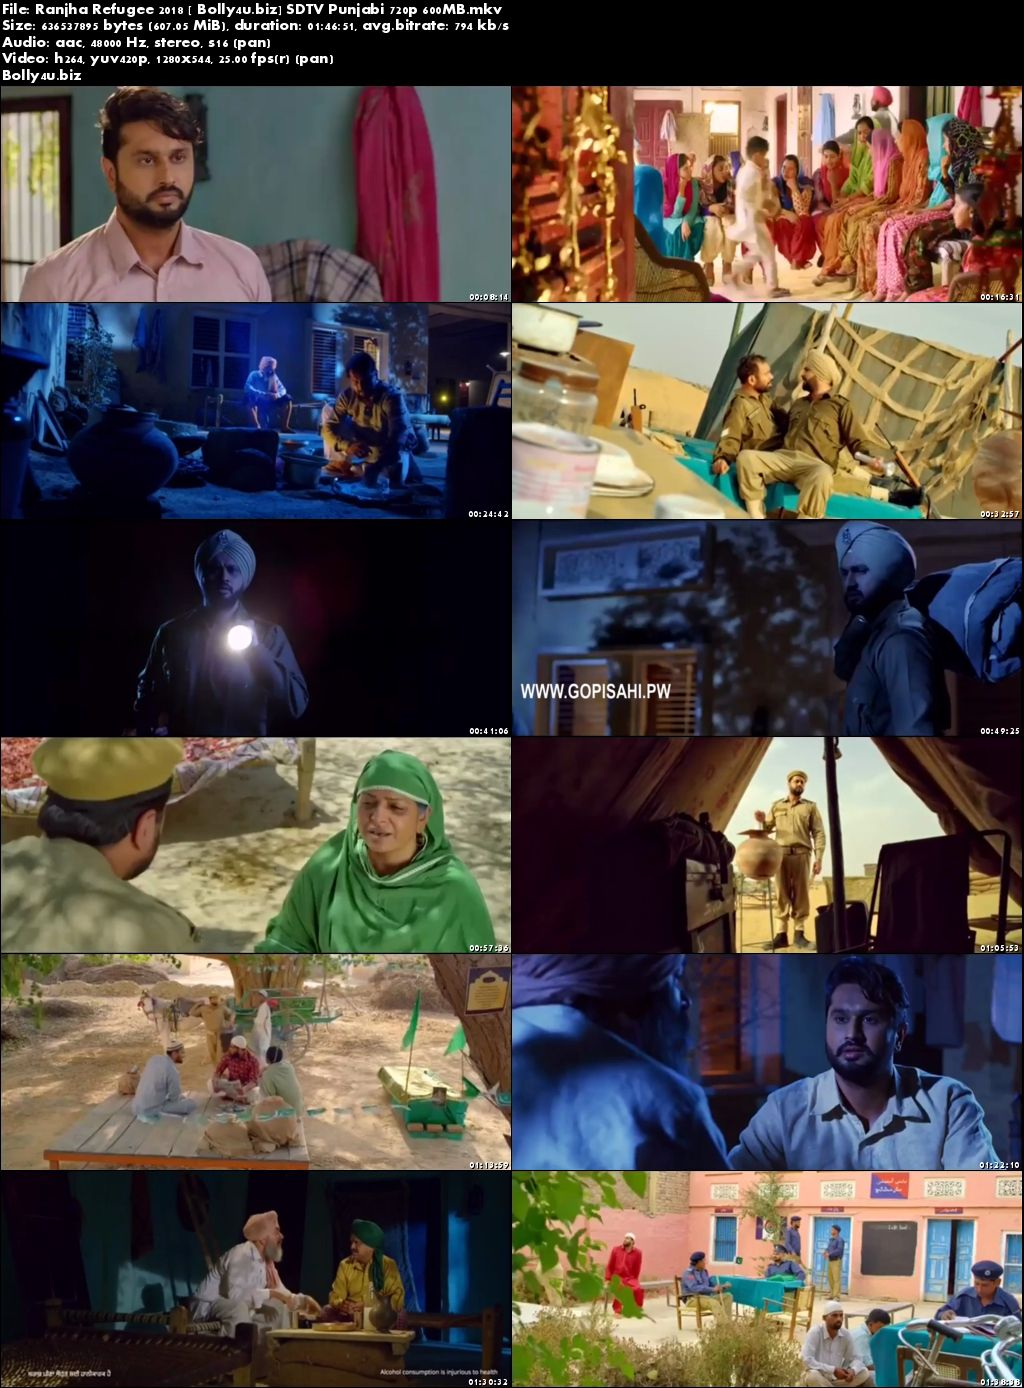 Ranjha Refugee 2018 SDTV 300Mb Punjabi 480p Download